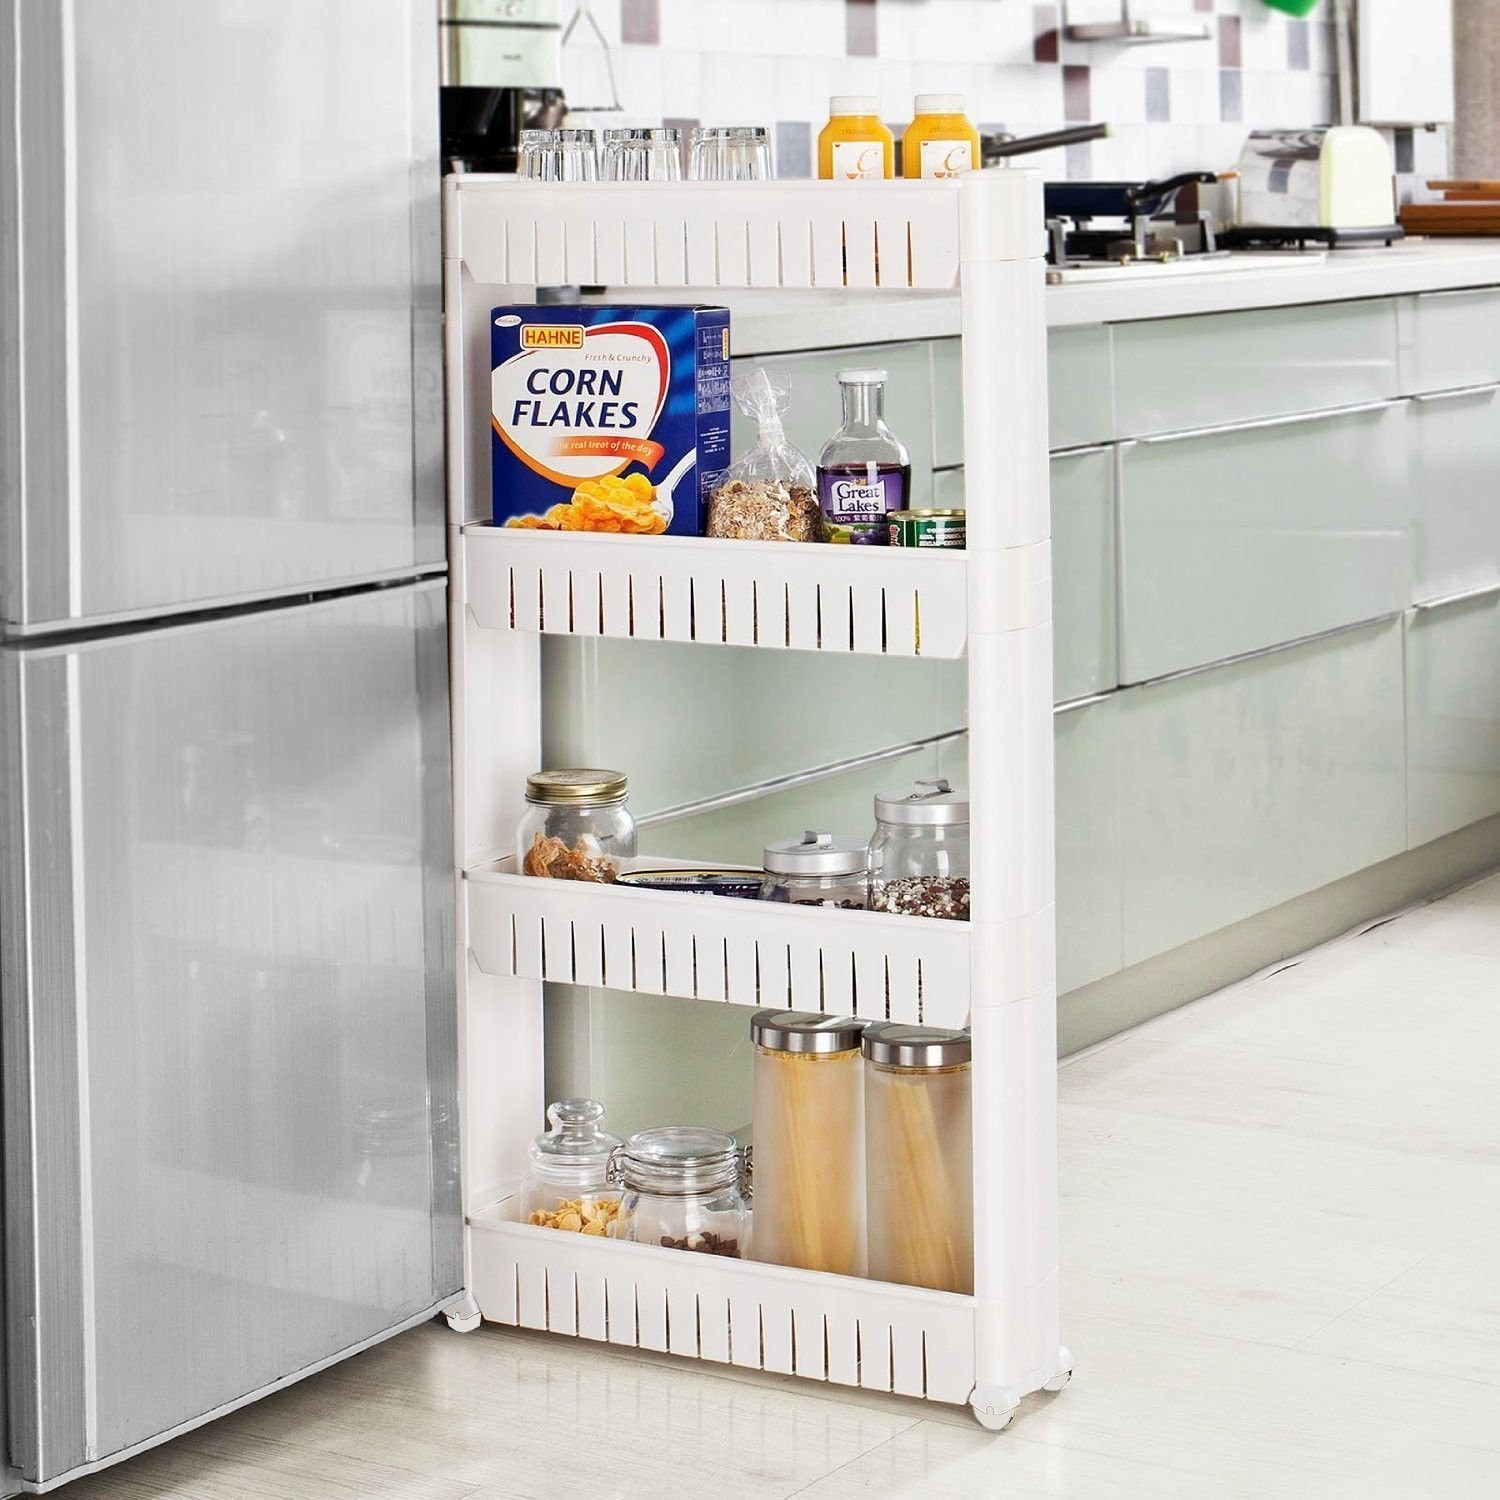 Shelving unit in between a fridge and a cabinet